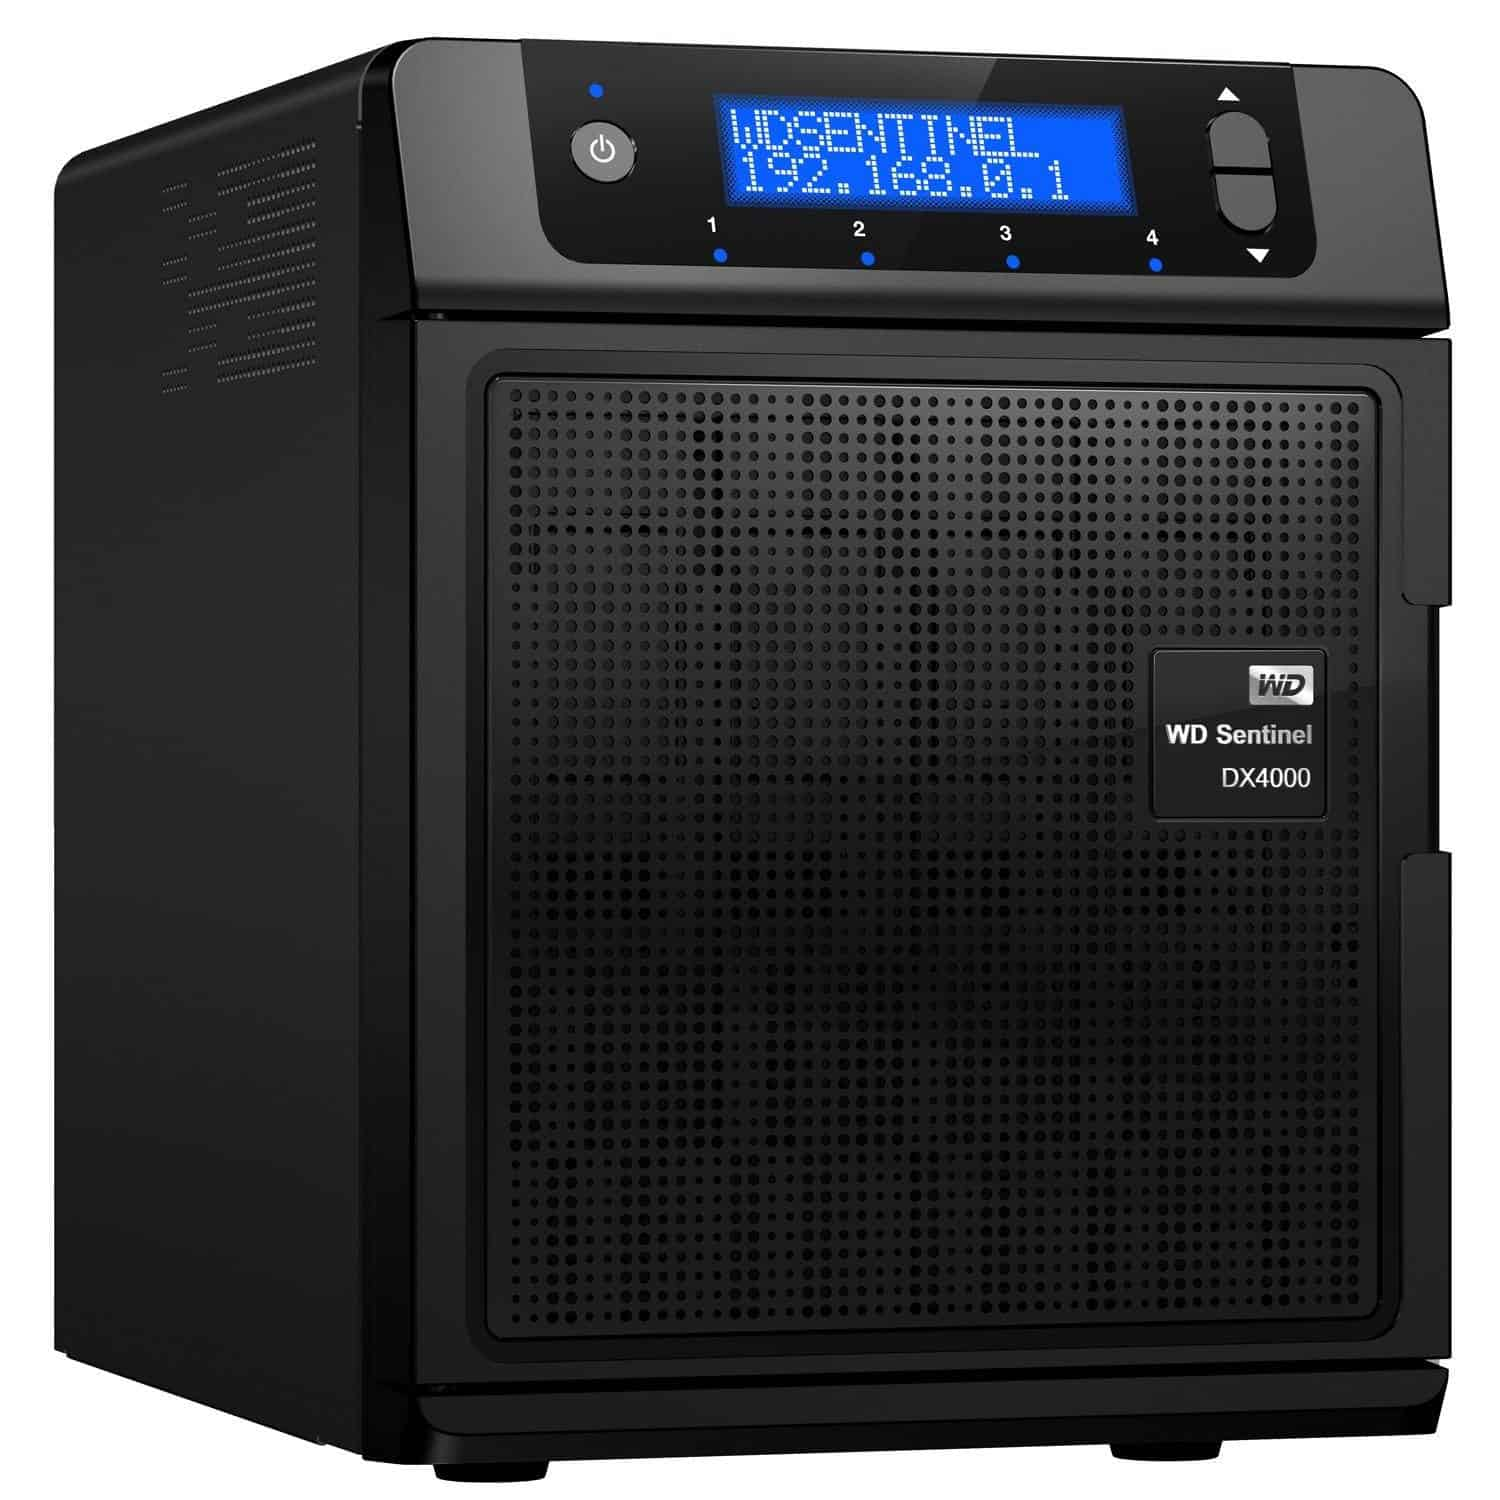 WD Sentinel DX4000 Test